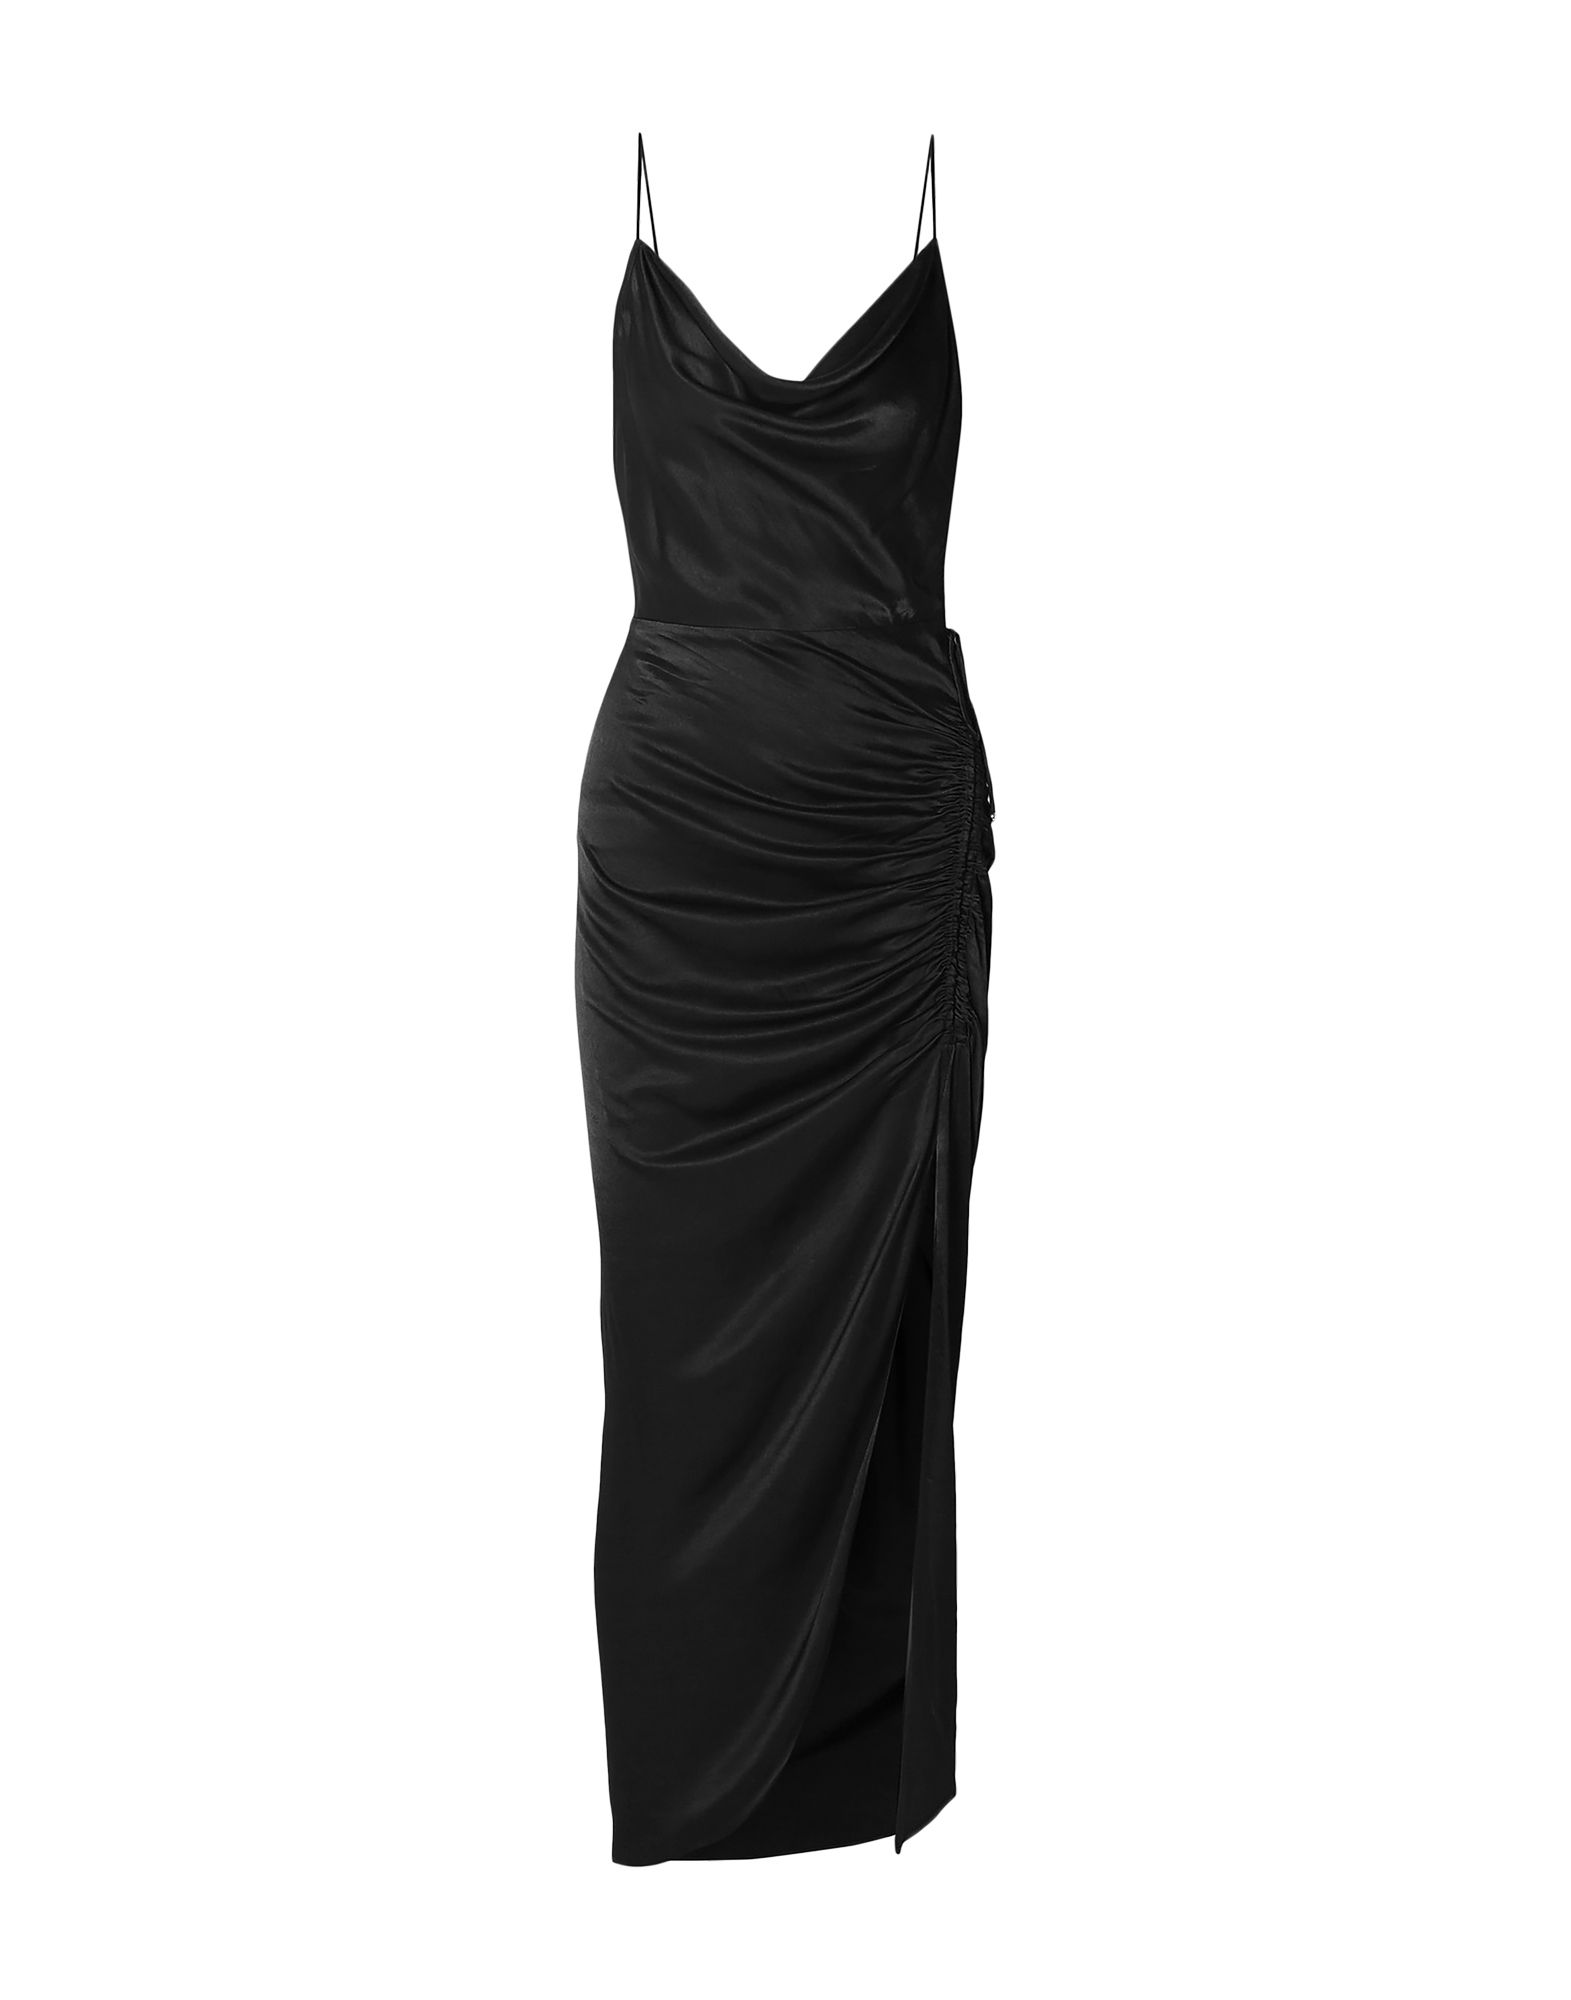 VERONICA BEARD Long dresses. satin, frills, laces, solid color, collar with draped neckline, sleeveless, no pockets, side closure, zipper closure, unlined. 100% Viscose